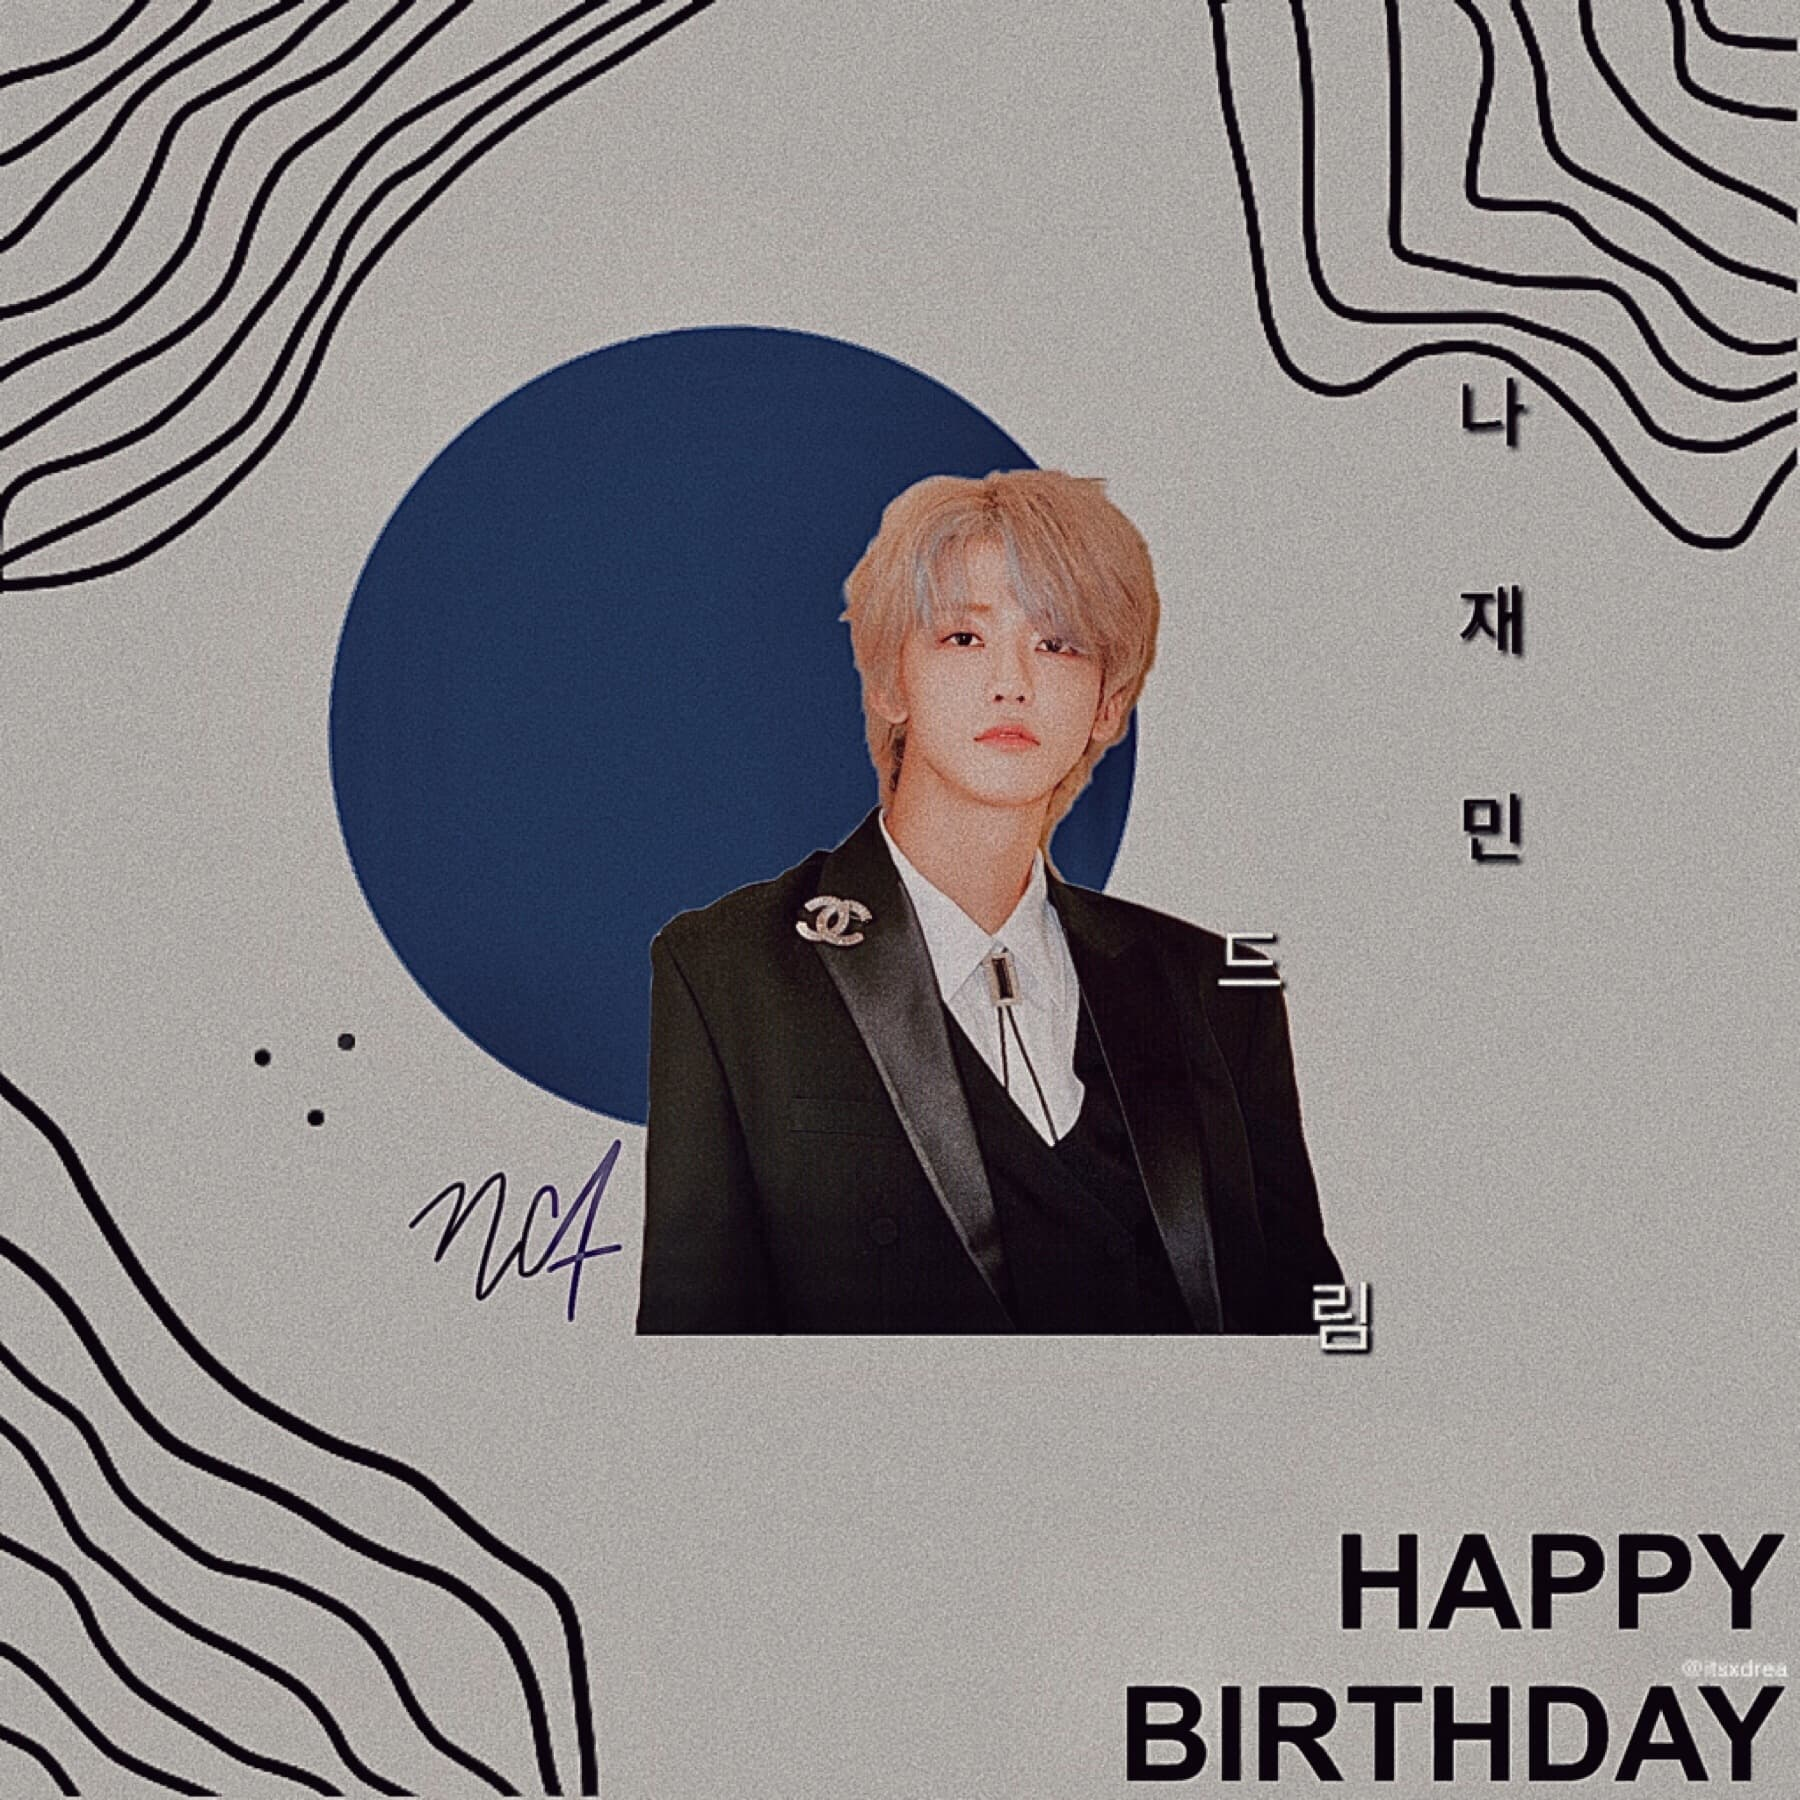 🌫 • na jaemin // nct • | inspo: @leegraphics on whi | HAPPY BIRTHDAYYY BB💚 WE'LL NEVER TAKE YOUR LOVE FOR NCTZENS FOR GRANTED!! I CANT BELIEVE YOURE 20 🤧i'm not very happy w the way this turned out 😖 but it's his bday so i had to do smth